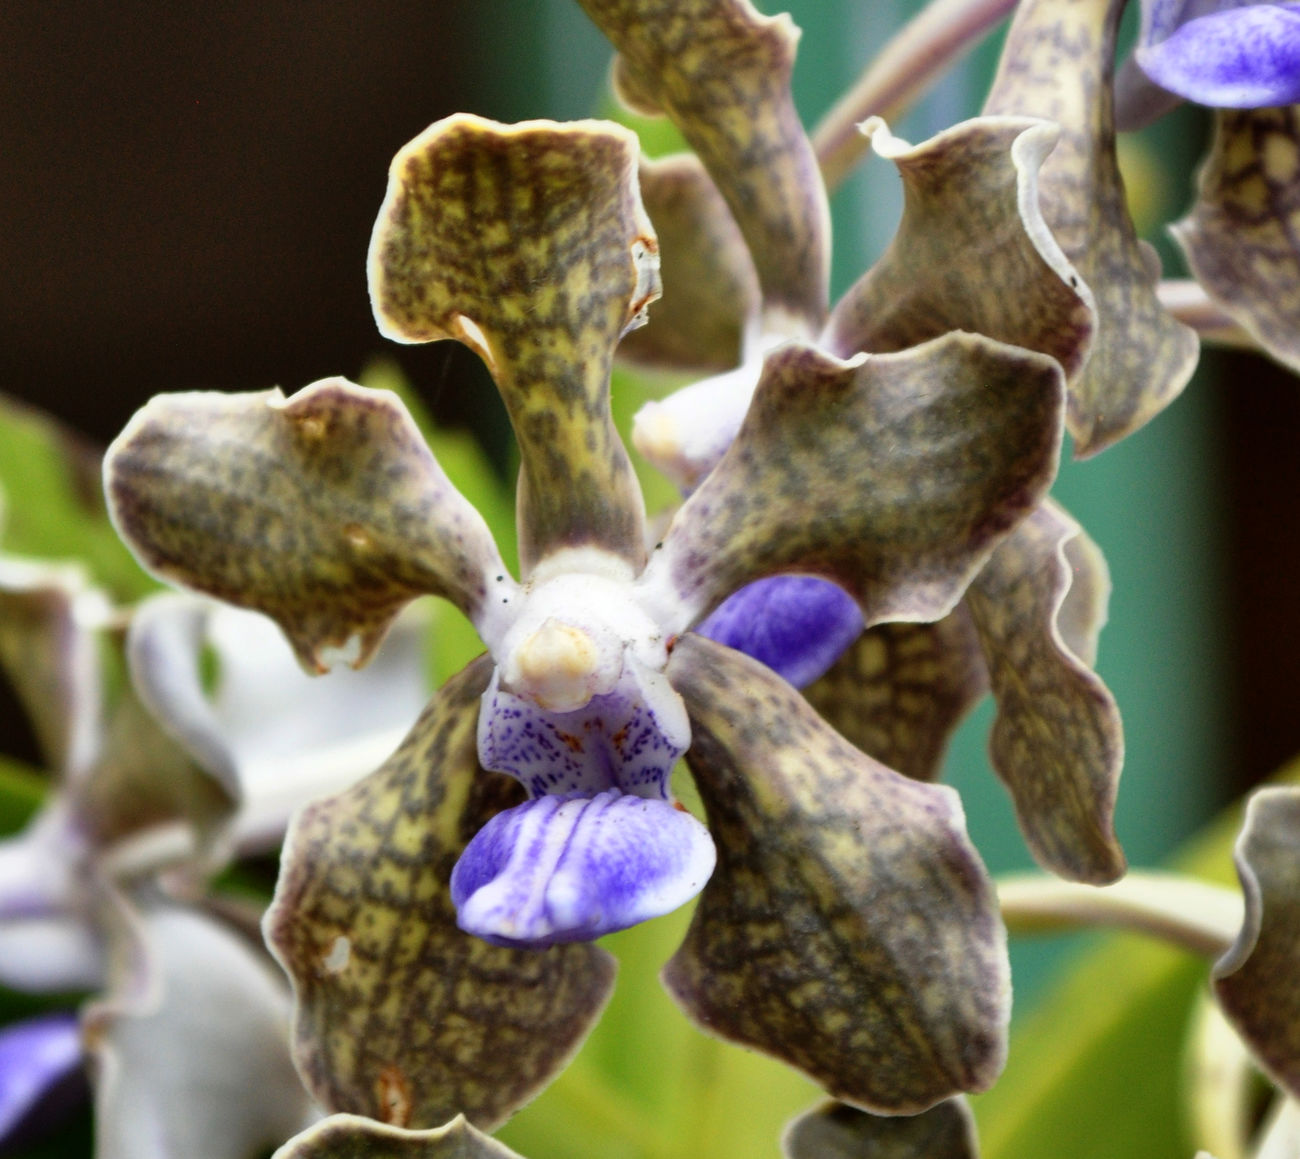 Flower Garden Photography Orchid Blossoms Orchids Collection Tropical Plants